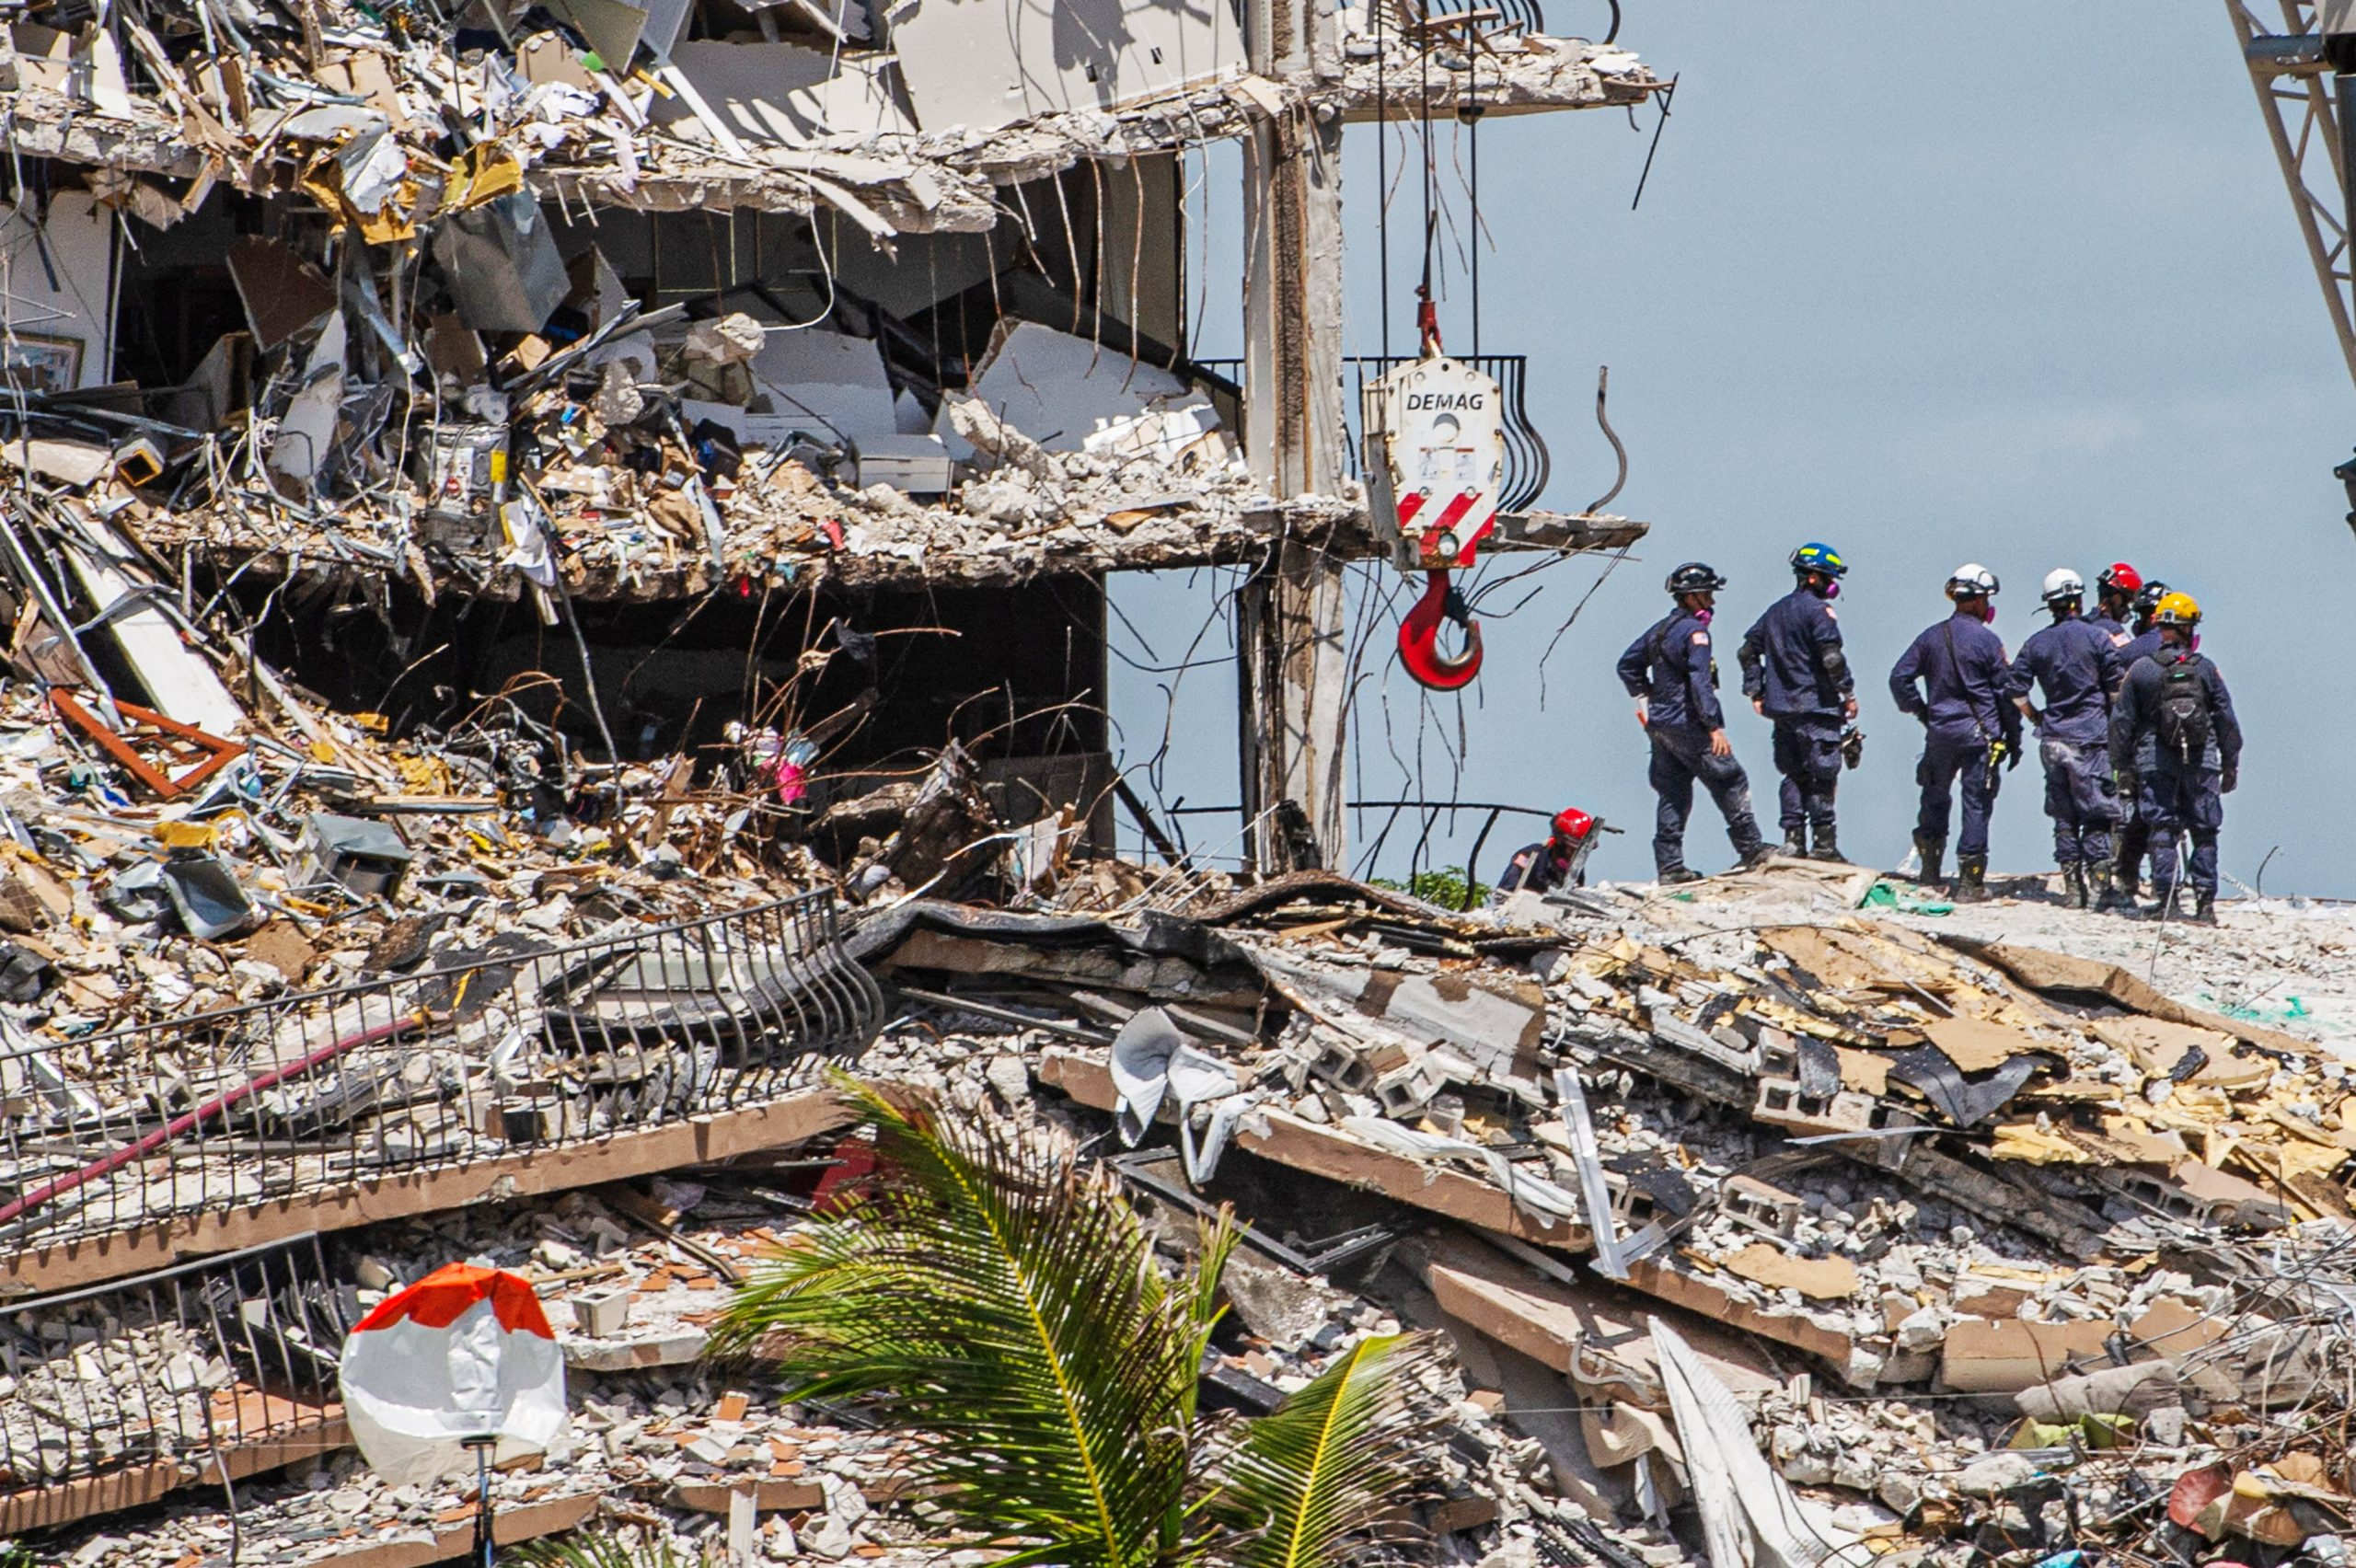 At least 9 dead, 152 unaccounted for in Florida condo tower collapse